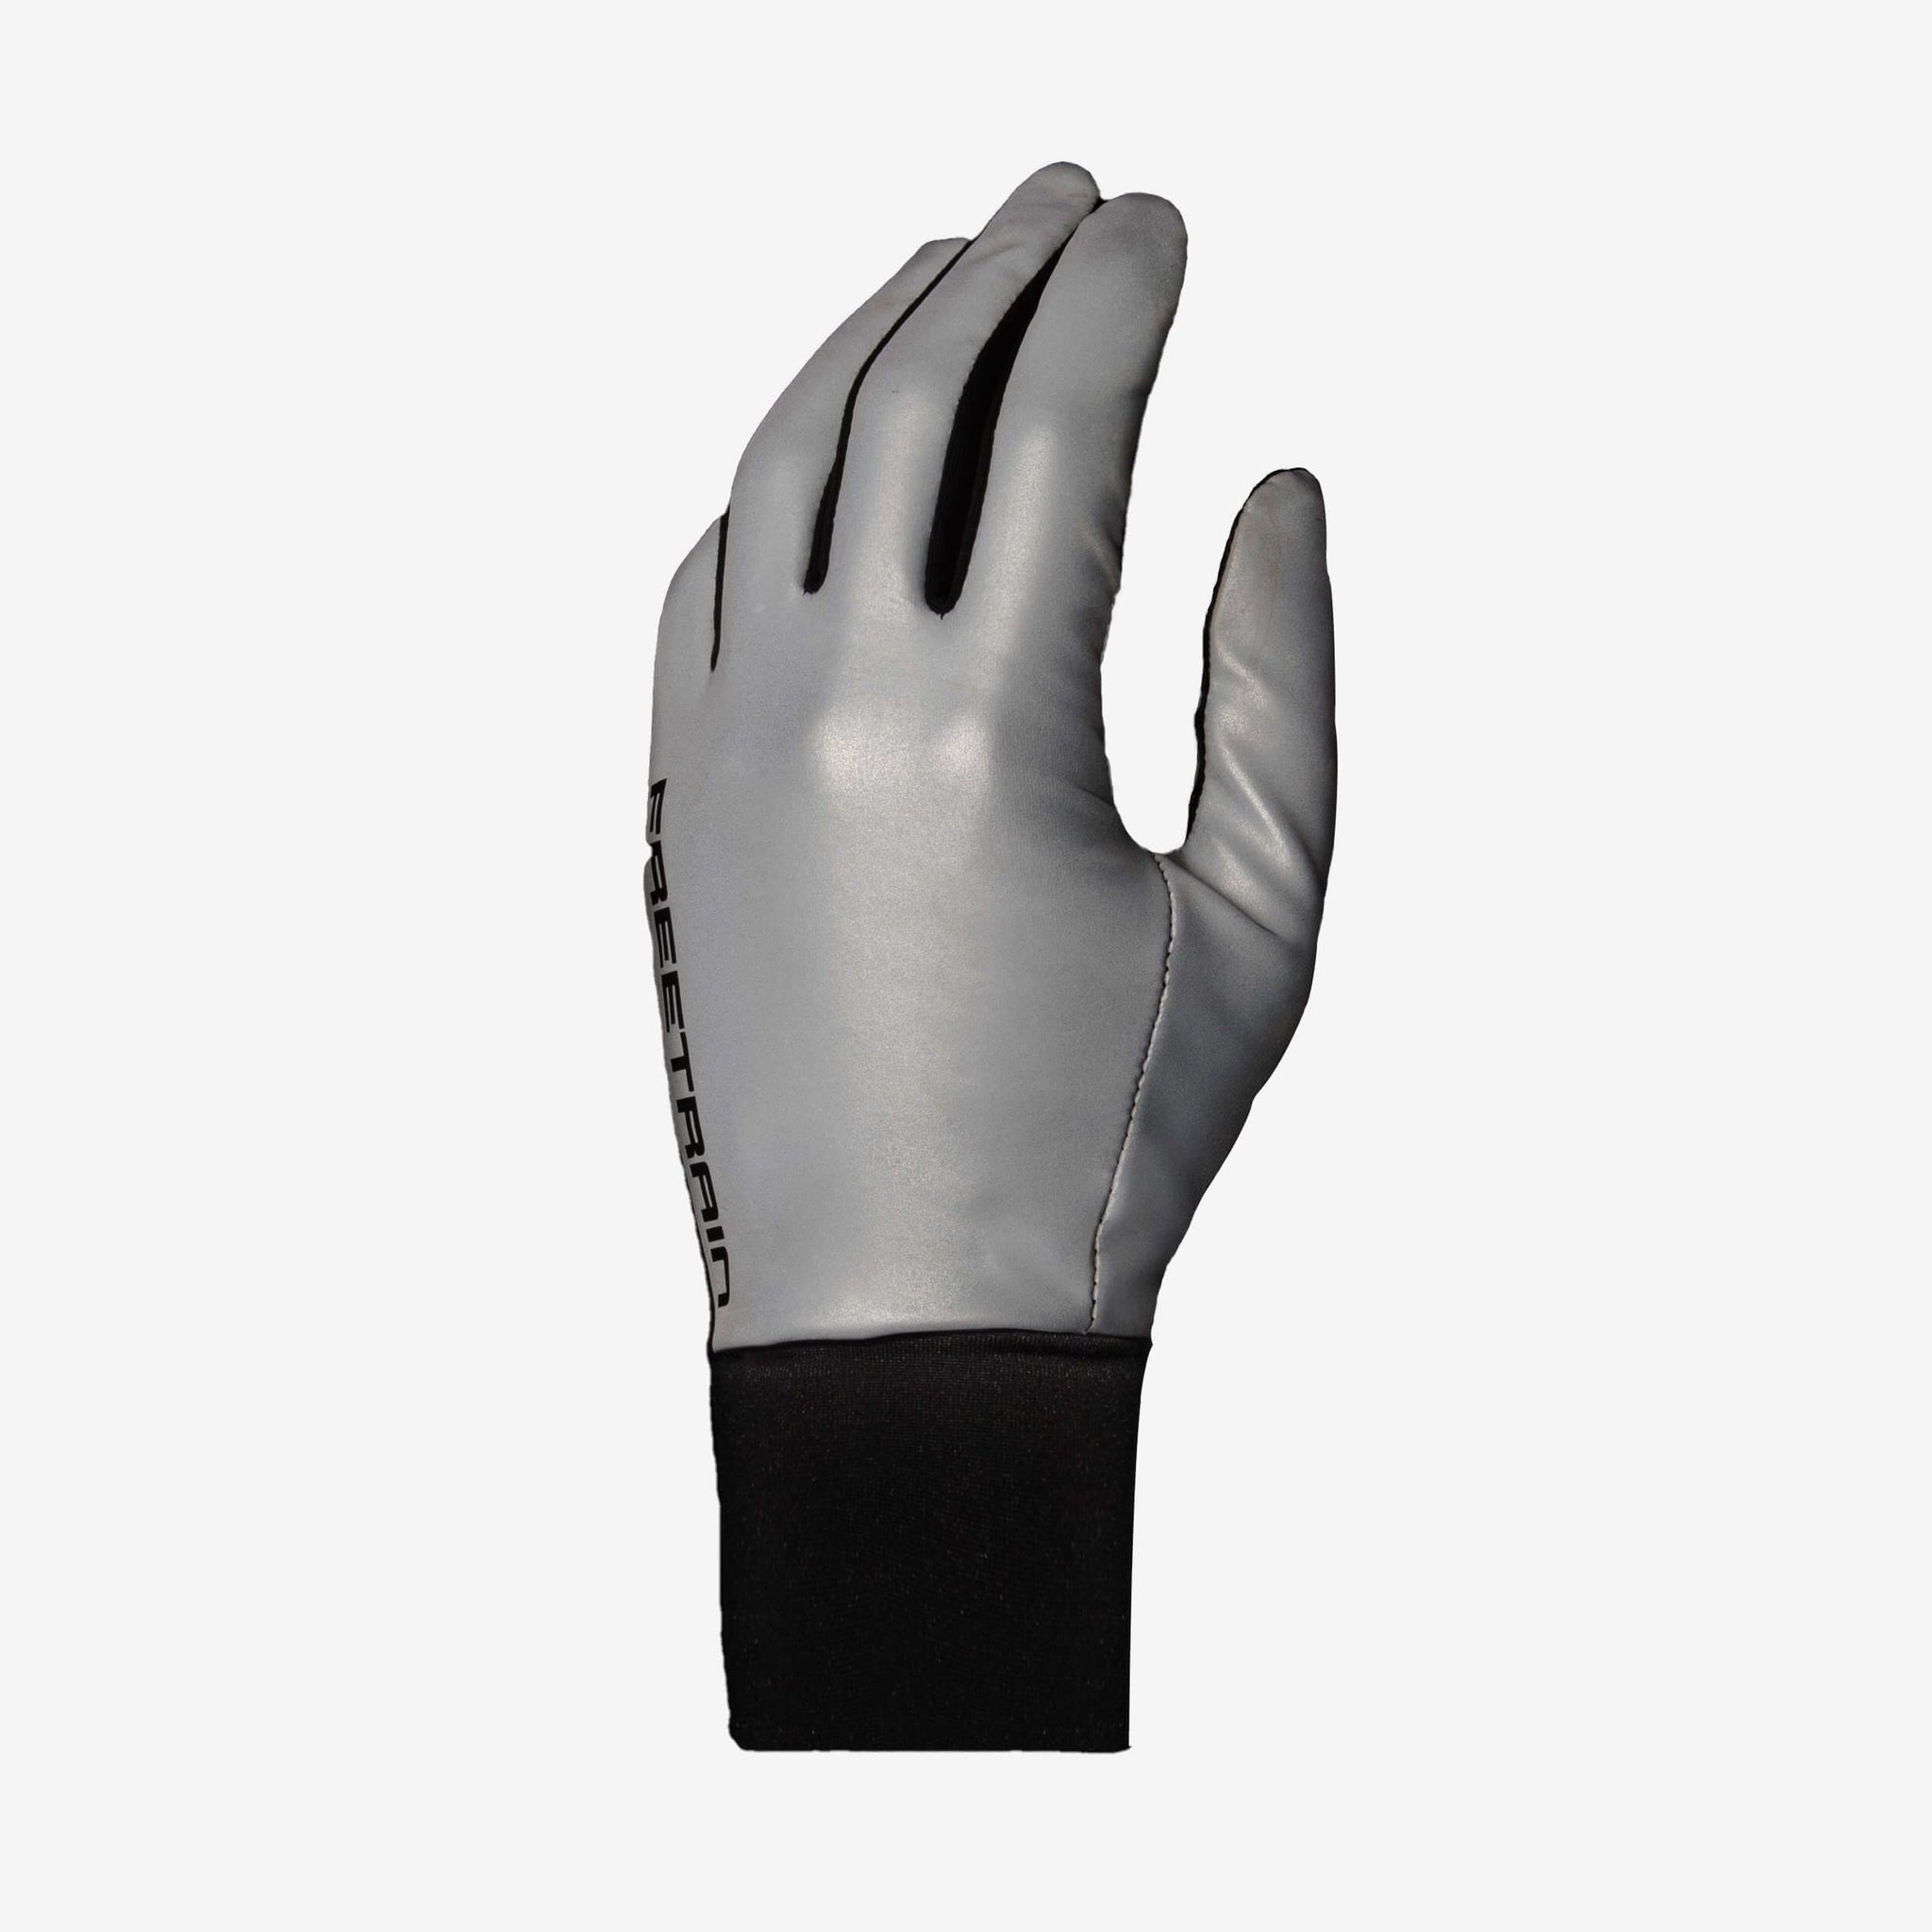 Freetrain GR1 Reflective Gloves